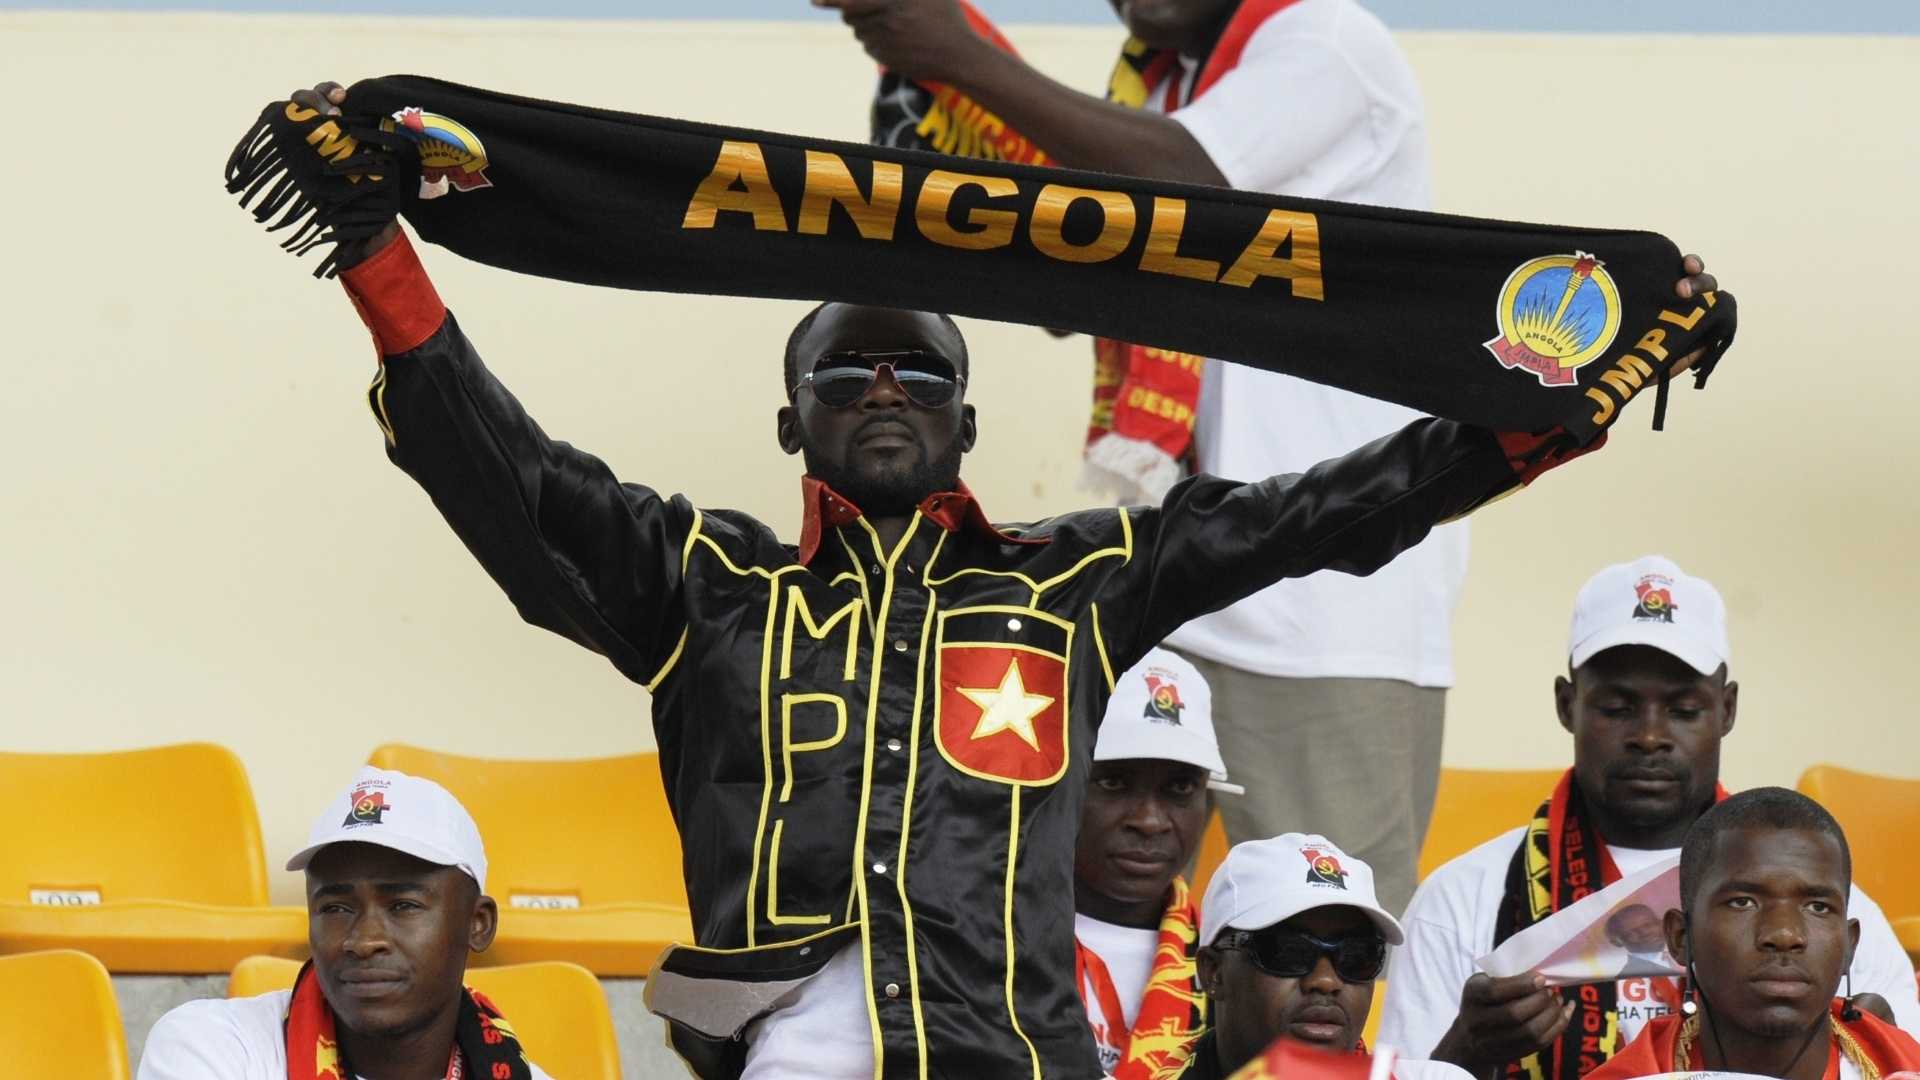 Fantasiado, torcedor de Angola comparece ao jogo de sua seleo contra Sudo